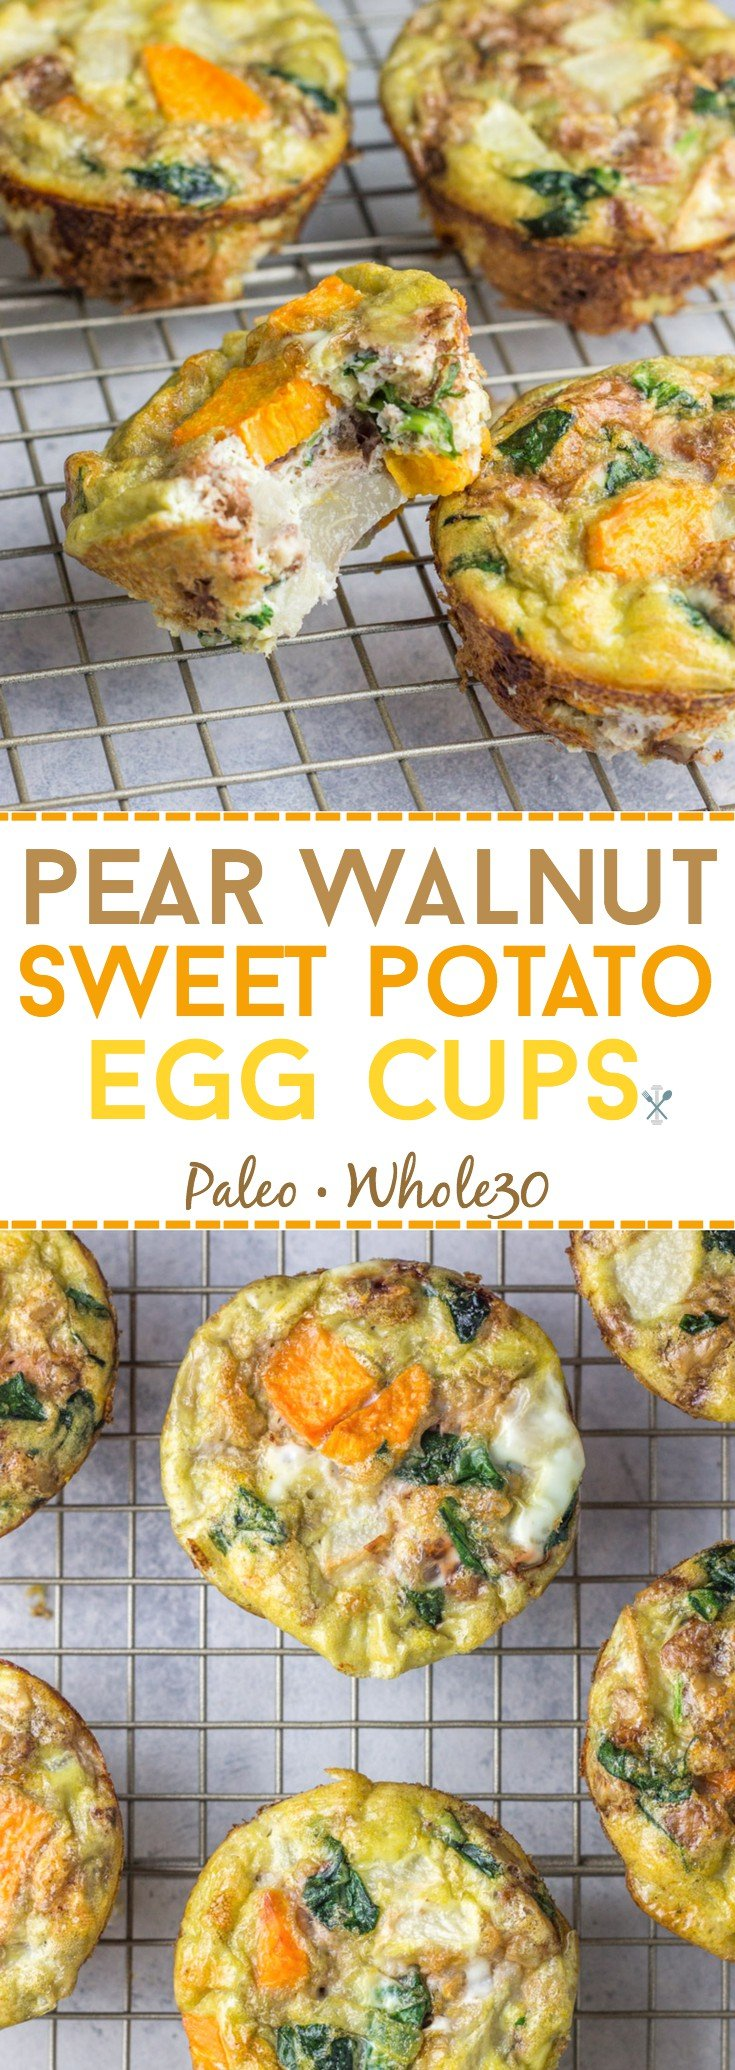 A new twist on egg cups! These are packed with sweet pears, toasted walnuts, and sweet potatoes. You'll love these paleo and Whole30 egg muffins. Meatless and portable.